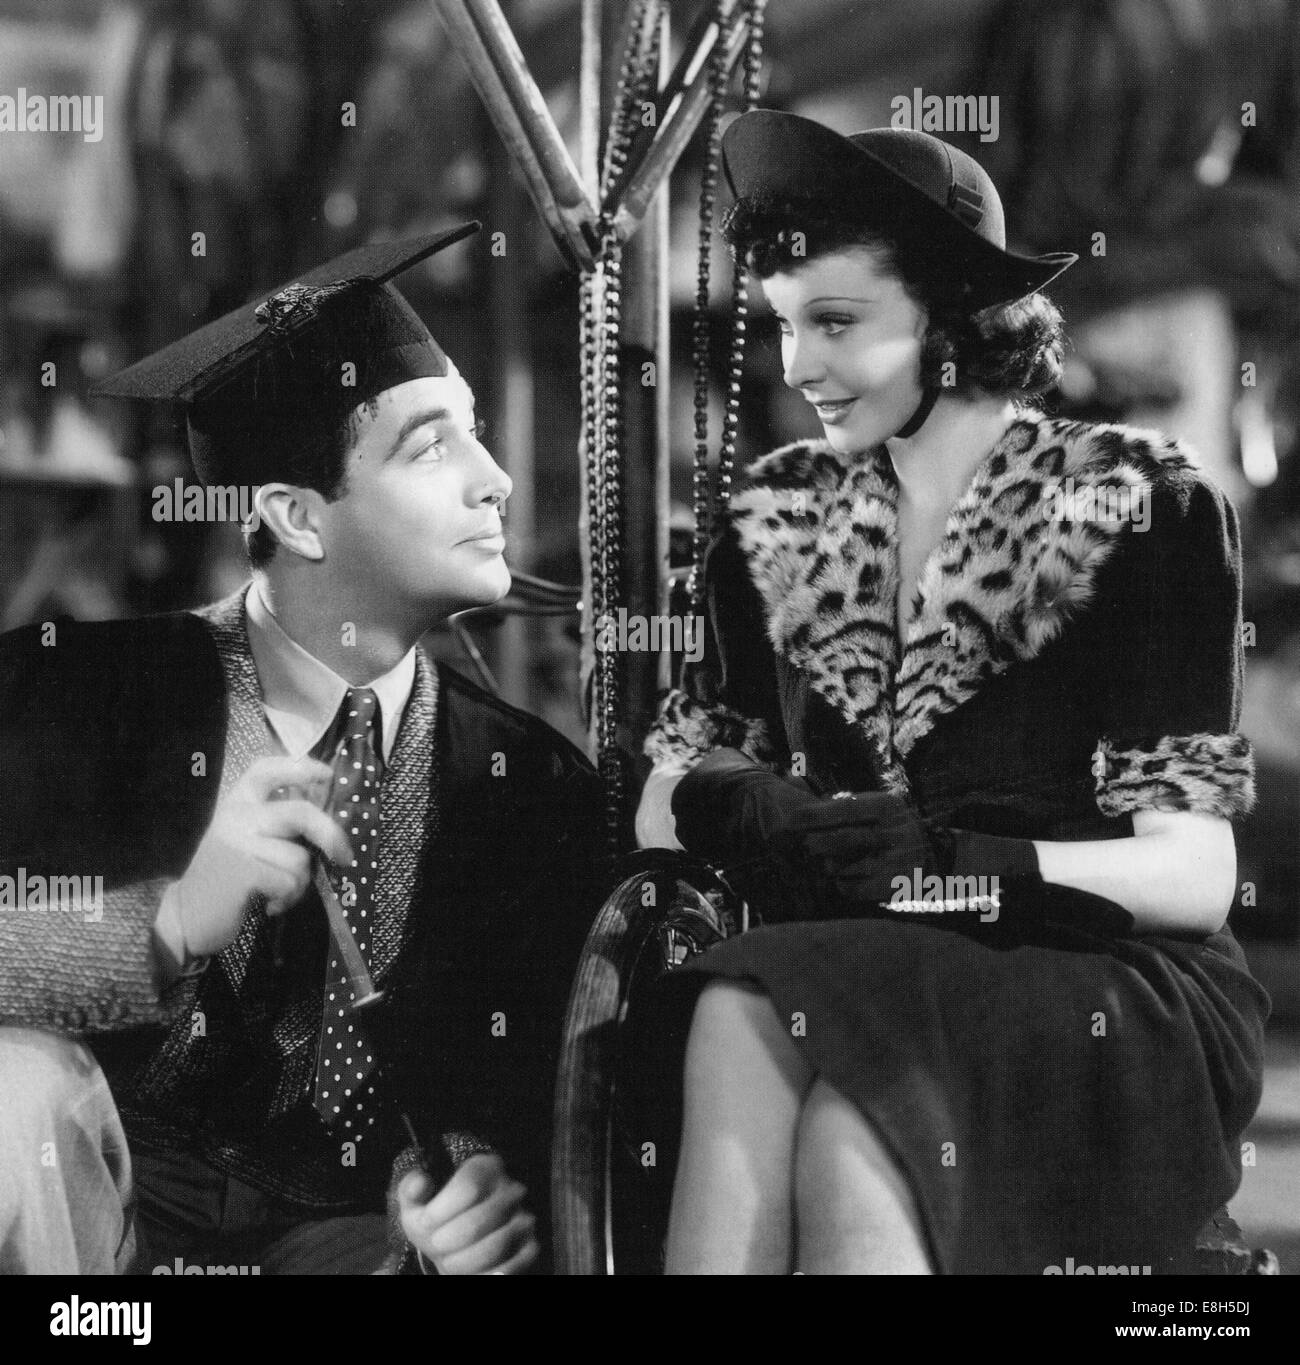 a yank at oxford 1938 mgm film with vivien leigh and